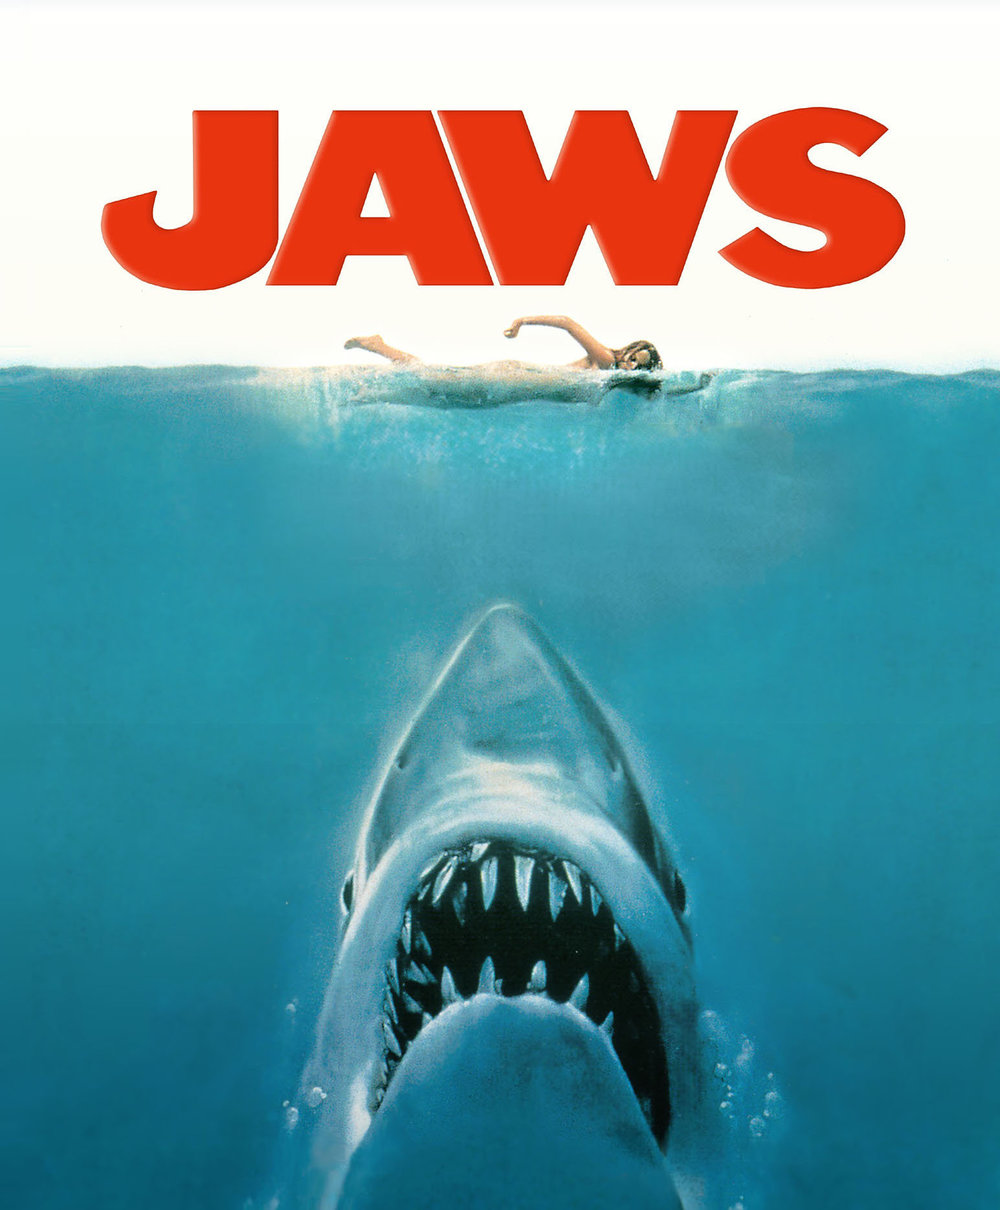 2 - JAWS